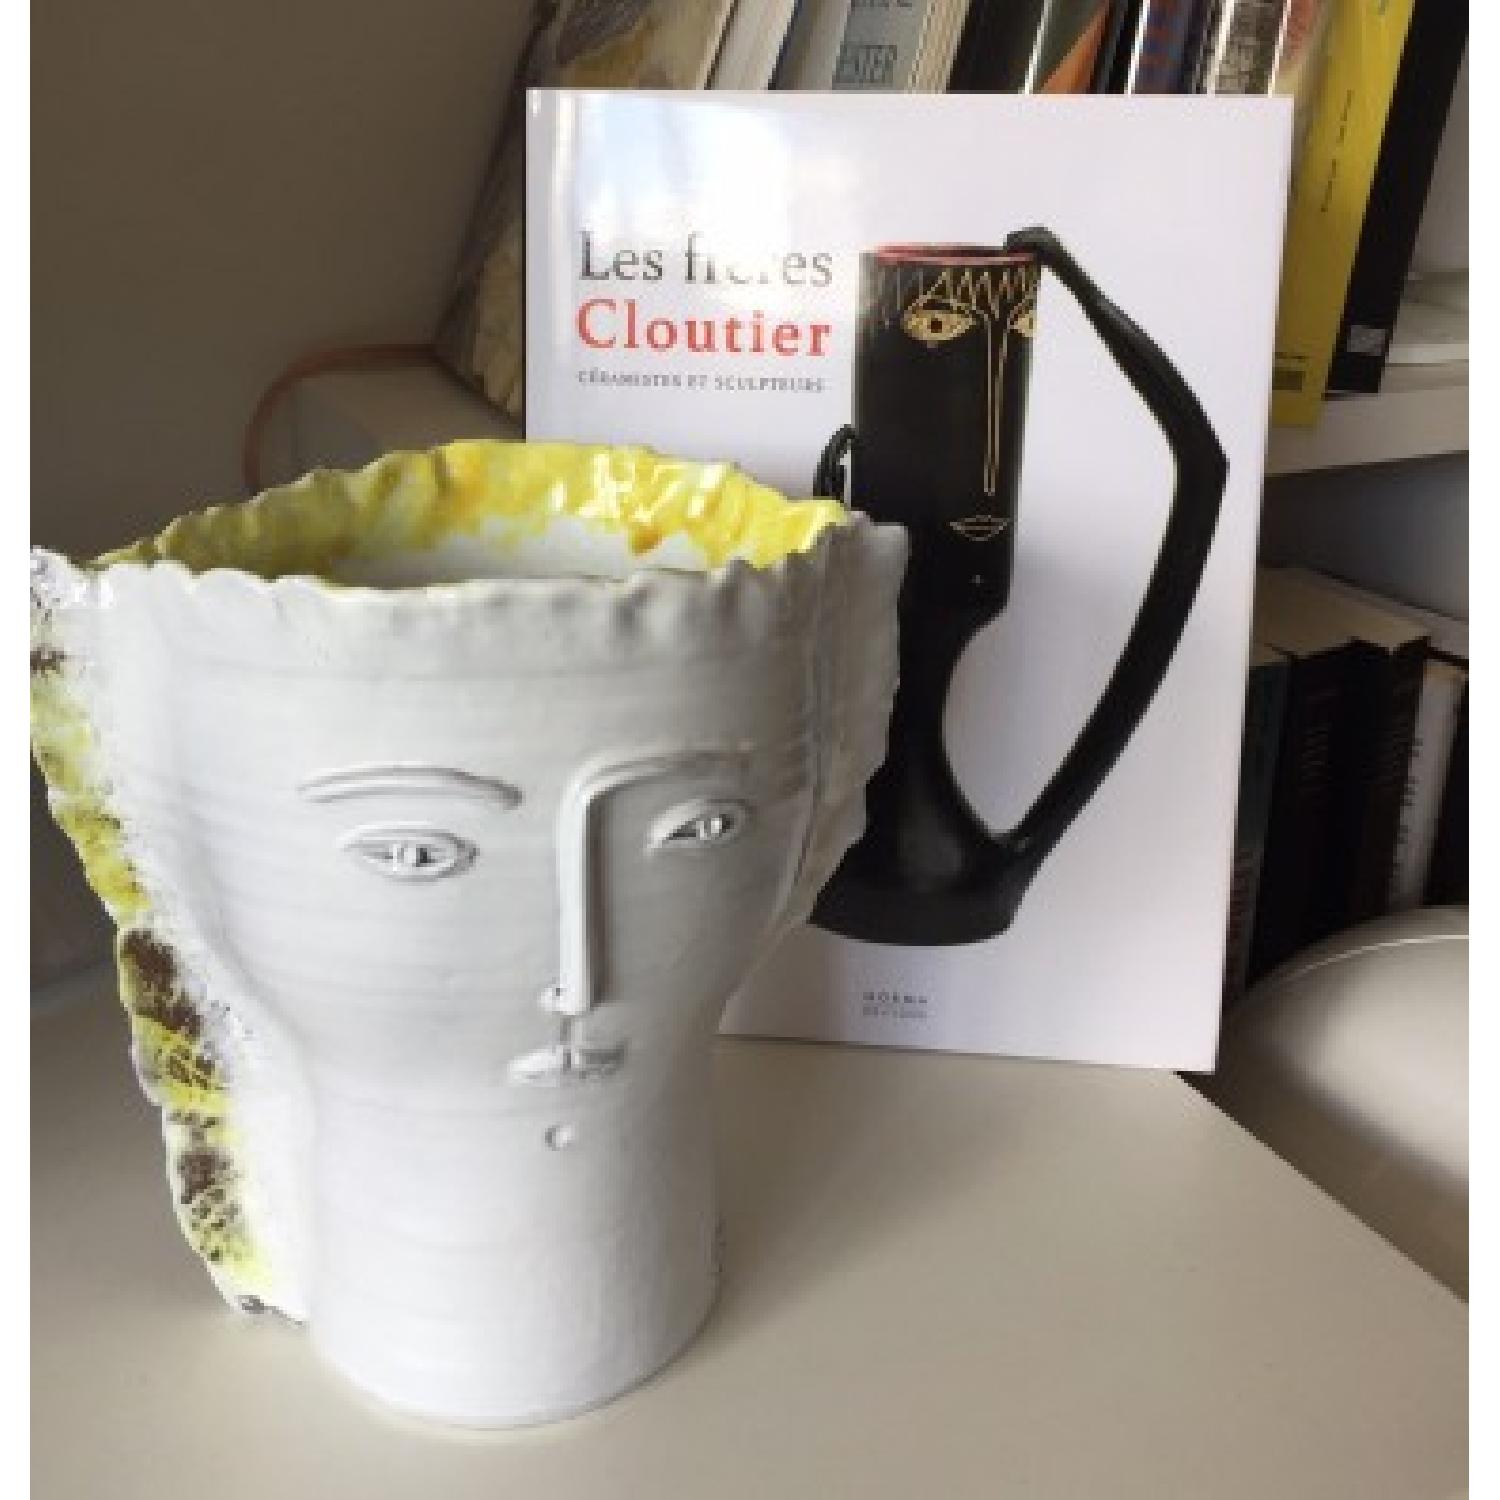 60's Cloutier Collectable Ceramic Vase - image-1